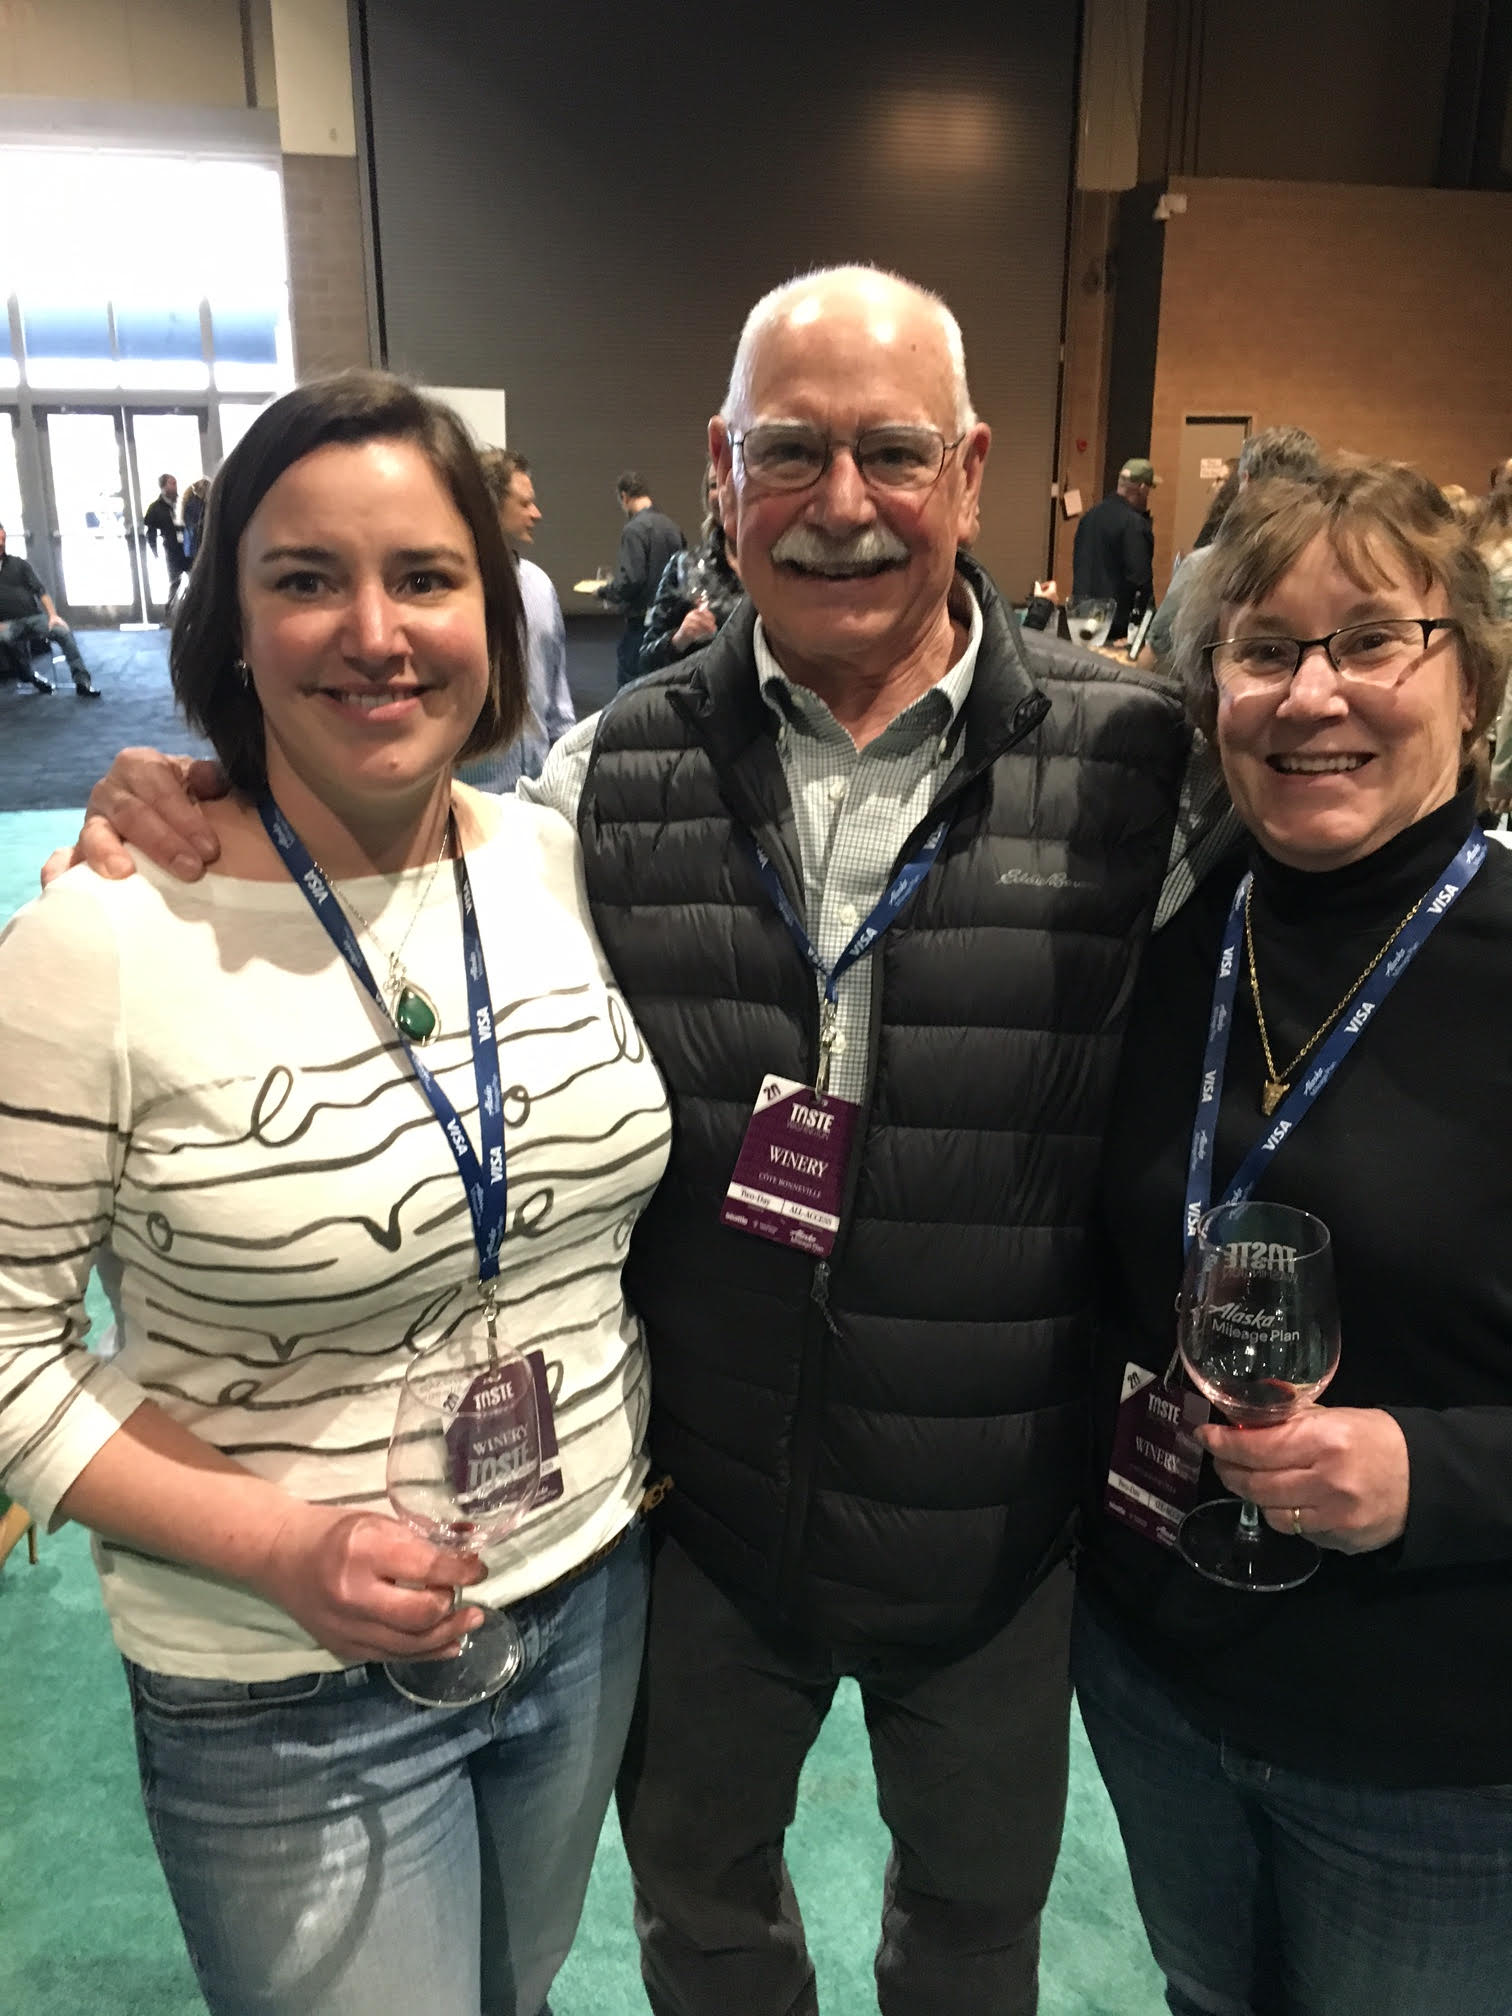 Great photo here of Kerry, Dr. Hugh and Kathy Shiels (L to R) as I had the chance to hang out with them at Taste of Washington earlier this year.